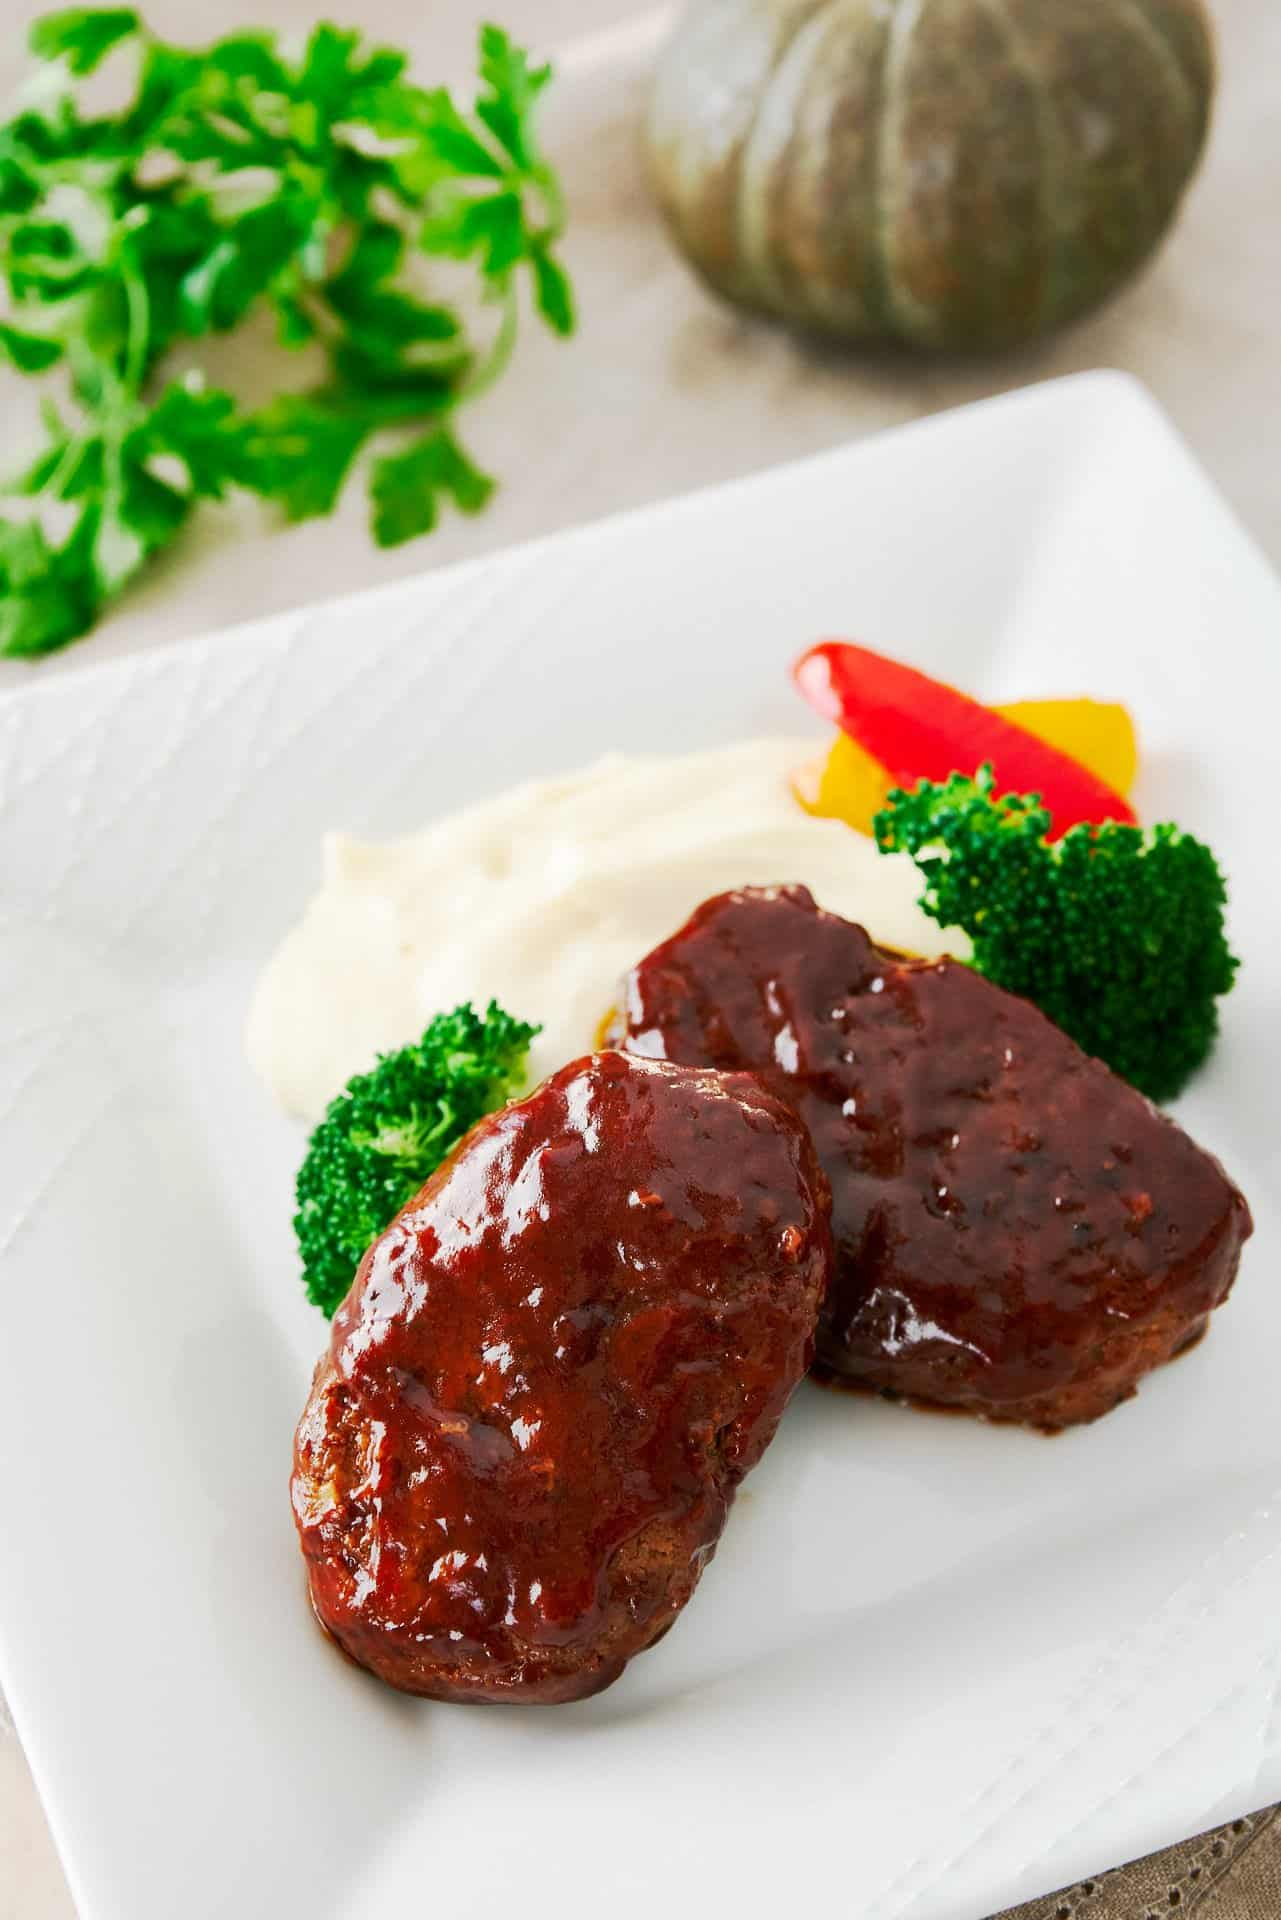 Hamburg Steak is like a single serving meatloaf. With big juicy patties glazed in a sweet and savory sauce, this is one of the most popular home cooked meals in Japan.